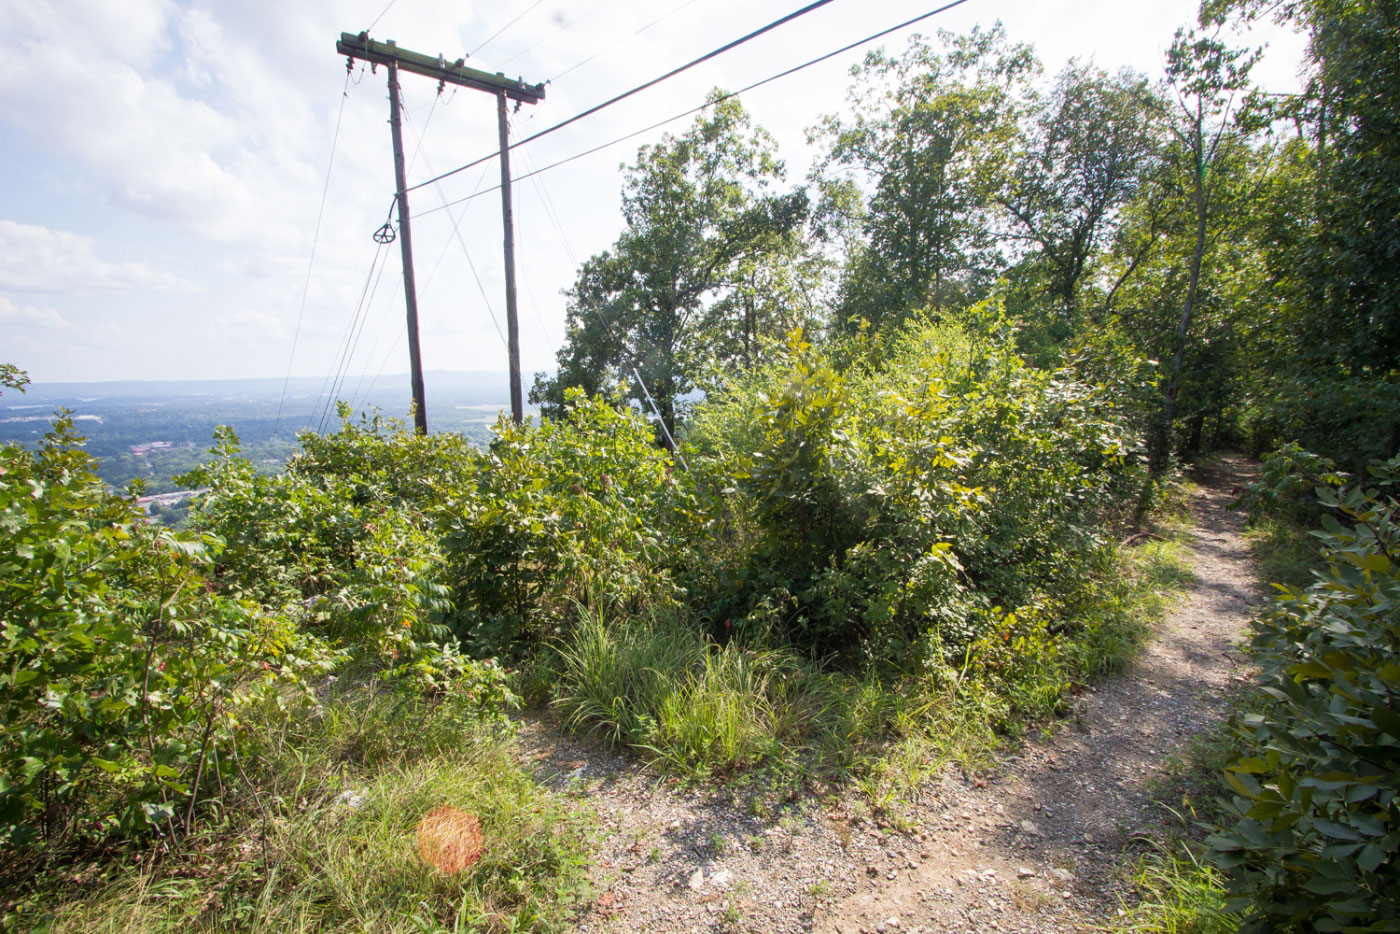 Hiking West Mountain via Sunset Trail in Hot Springs National Park